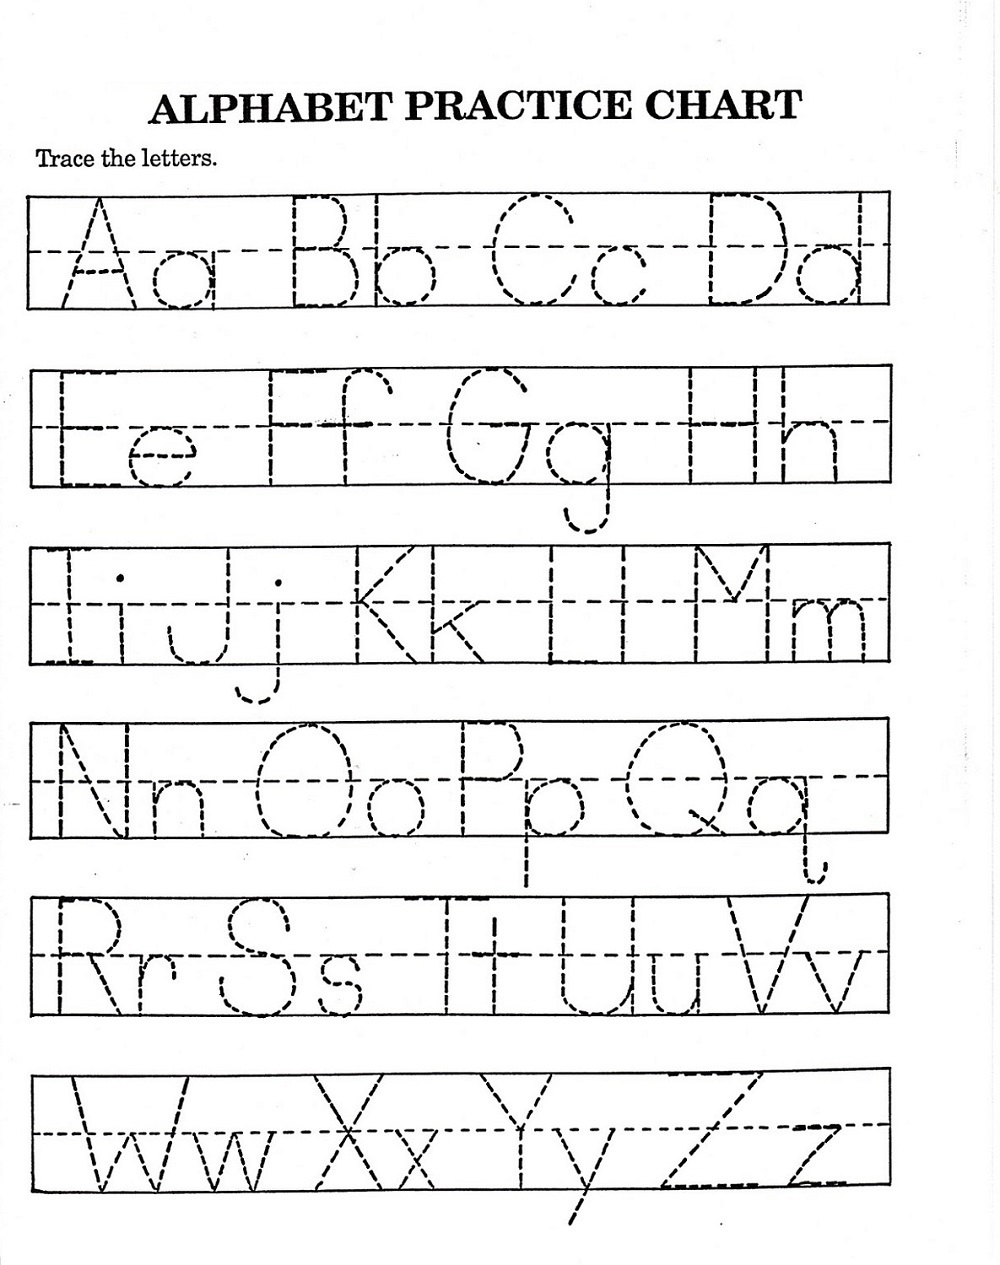 Alphabet Tracing For Kids A-Z | Activity Shelter in Tracing Letters Website